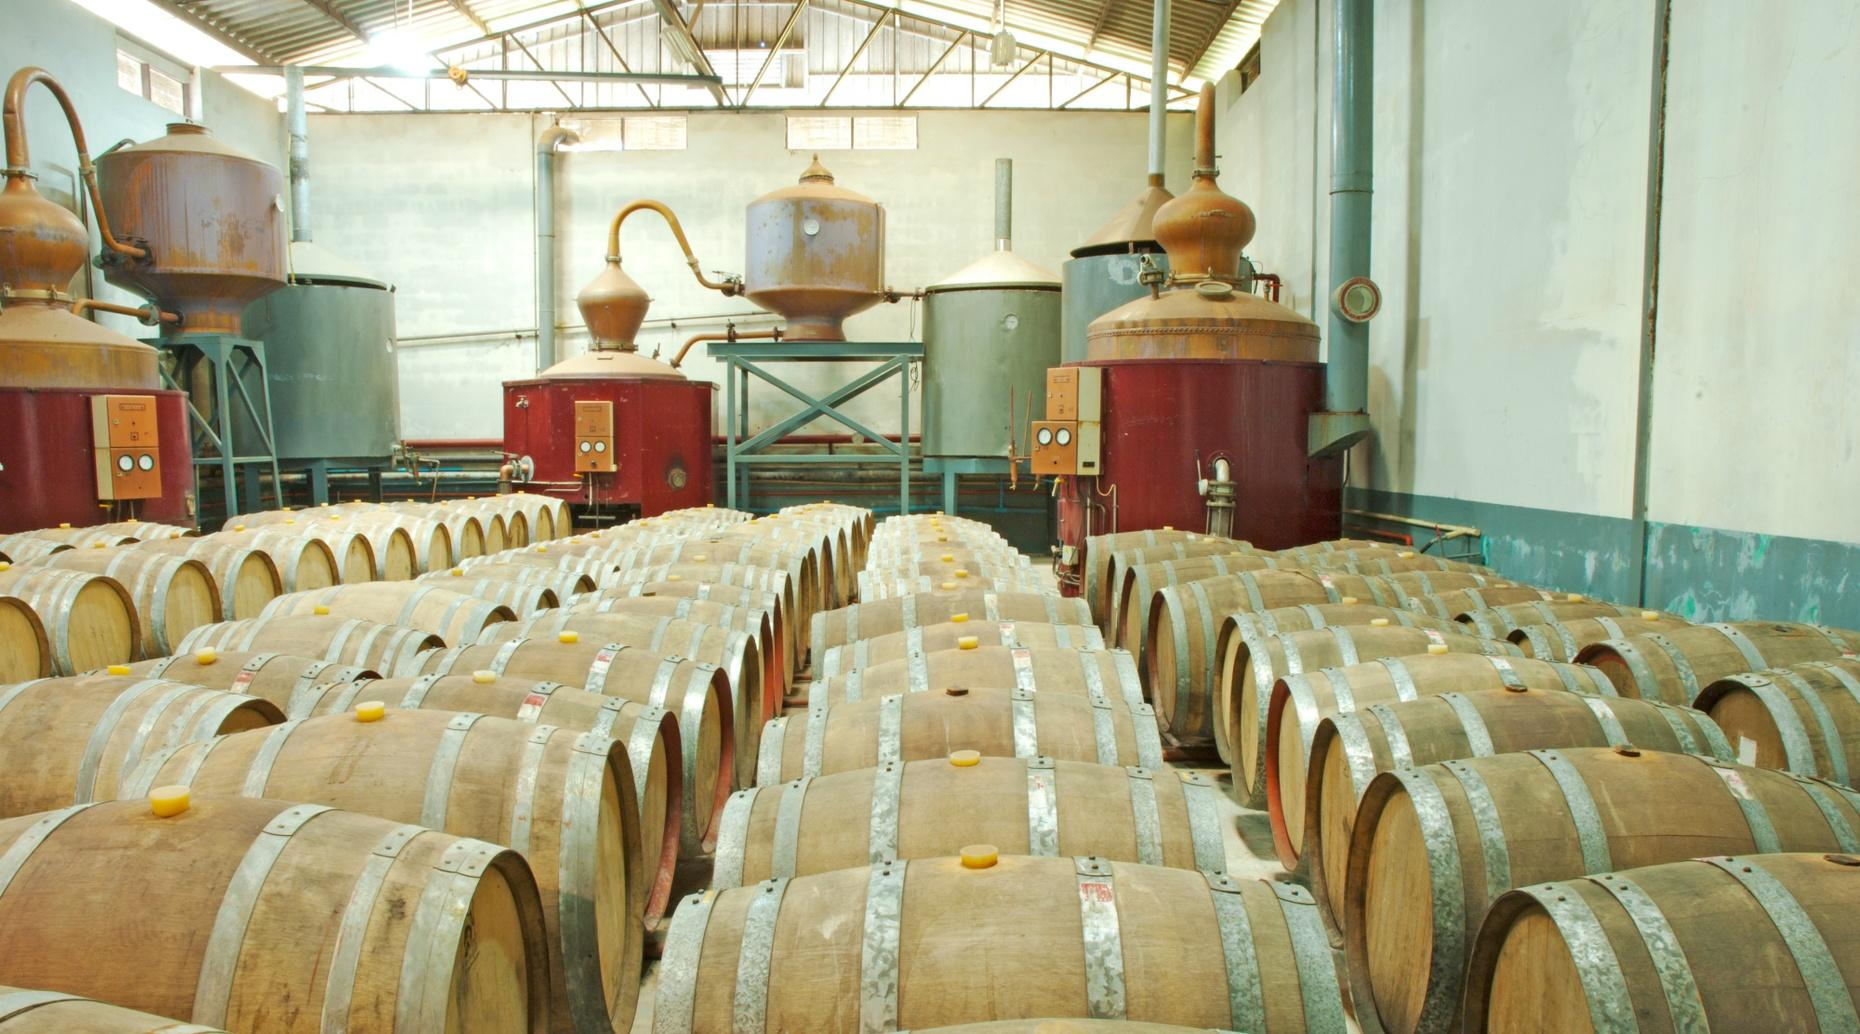 Texas Hill Country Distillery Tour in Dripping Springs